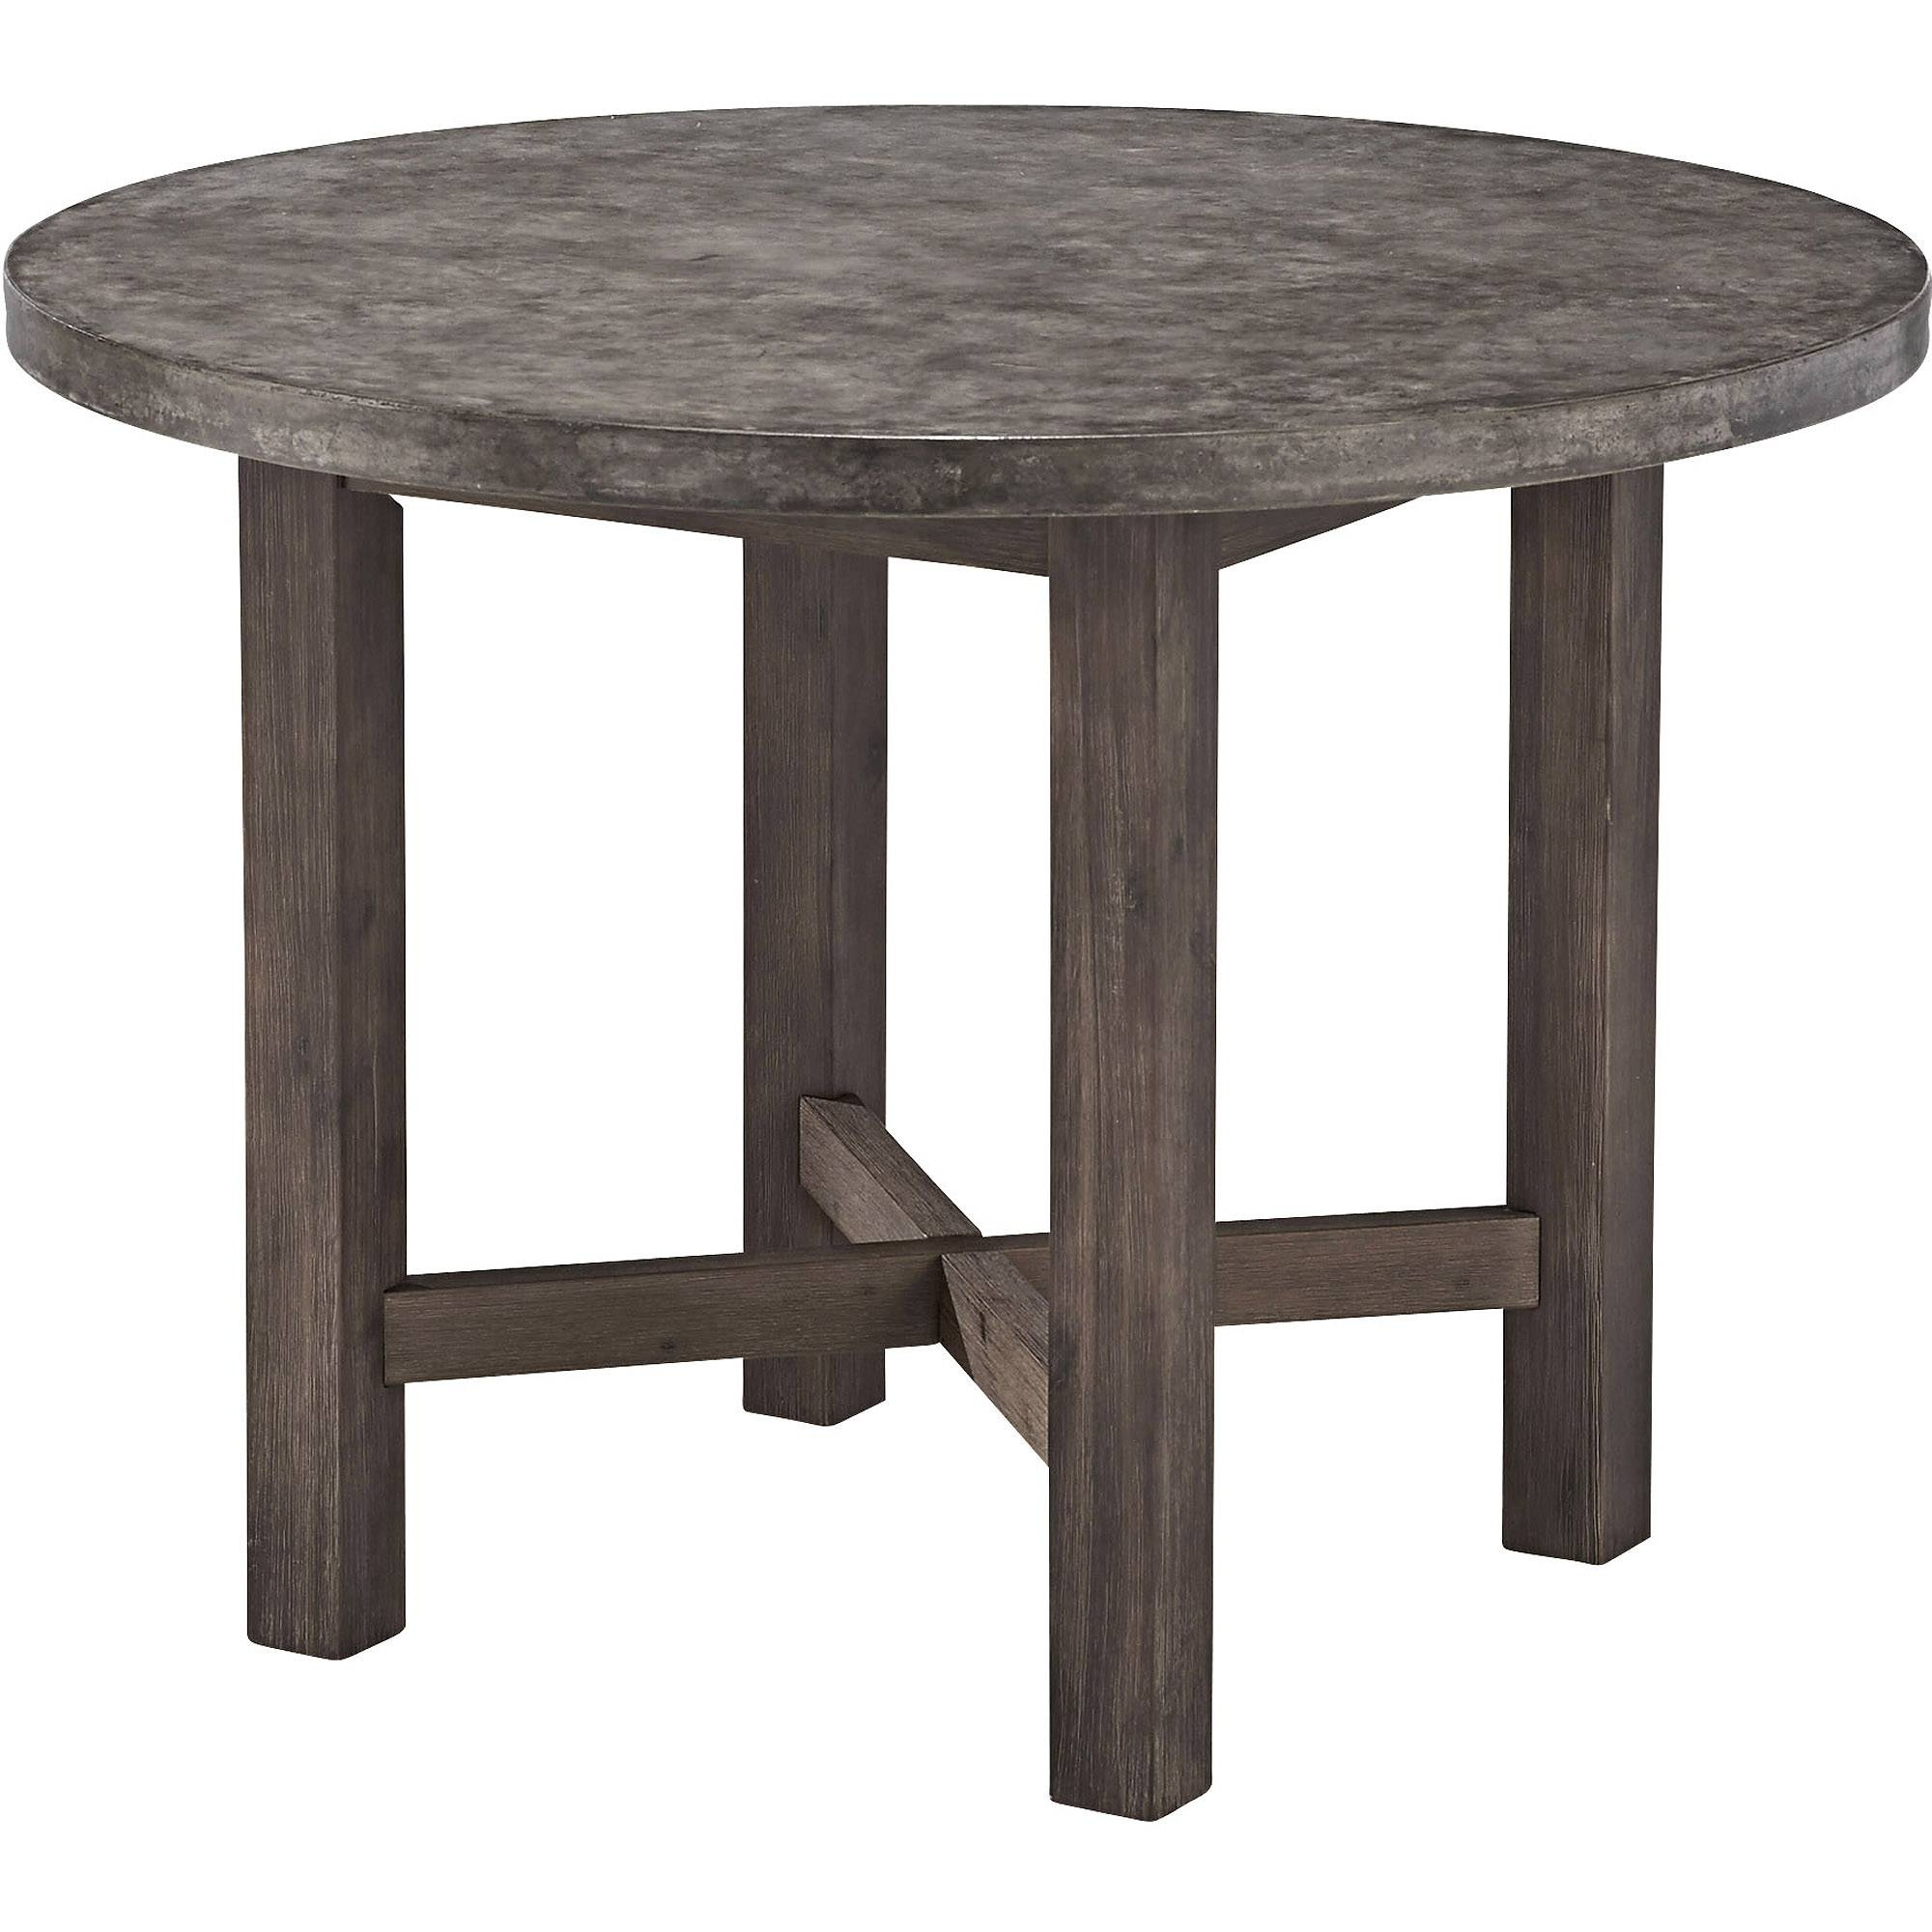 Dining Room Tables - Walmart with Half Circle Coffee Tables (Image 12 of 30)